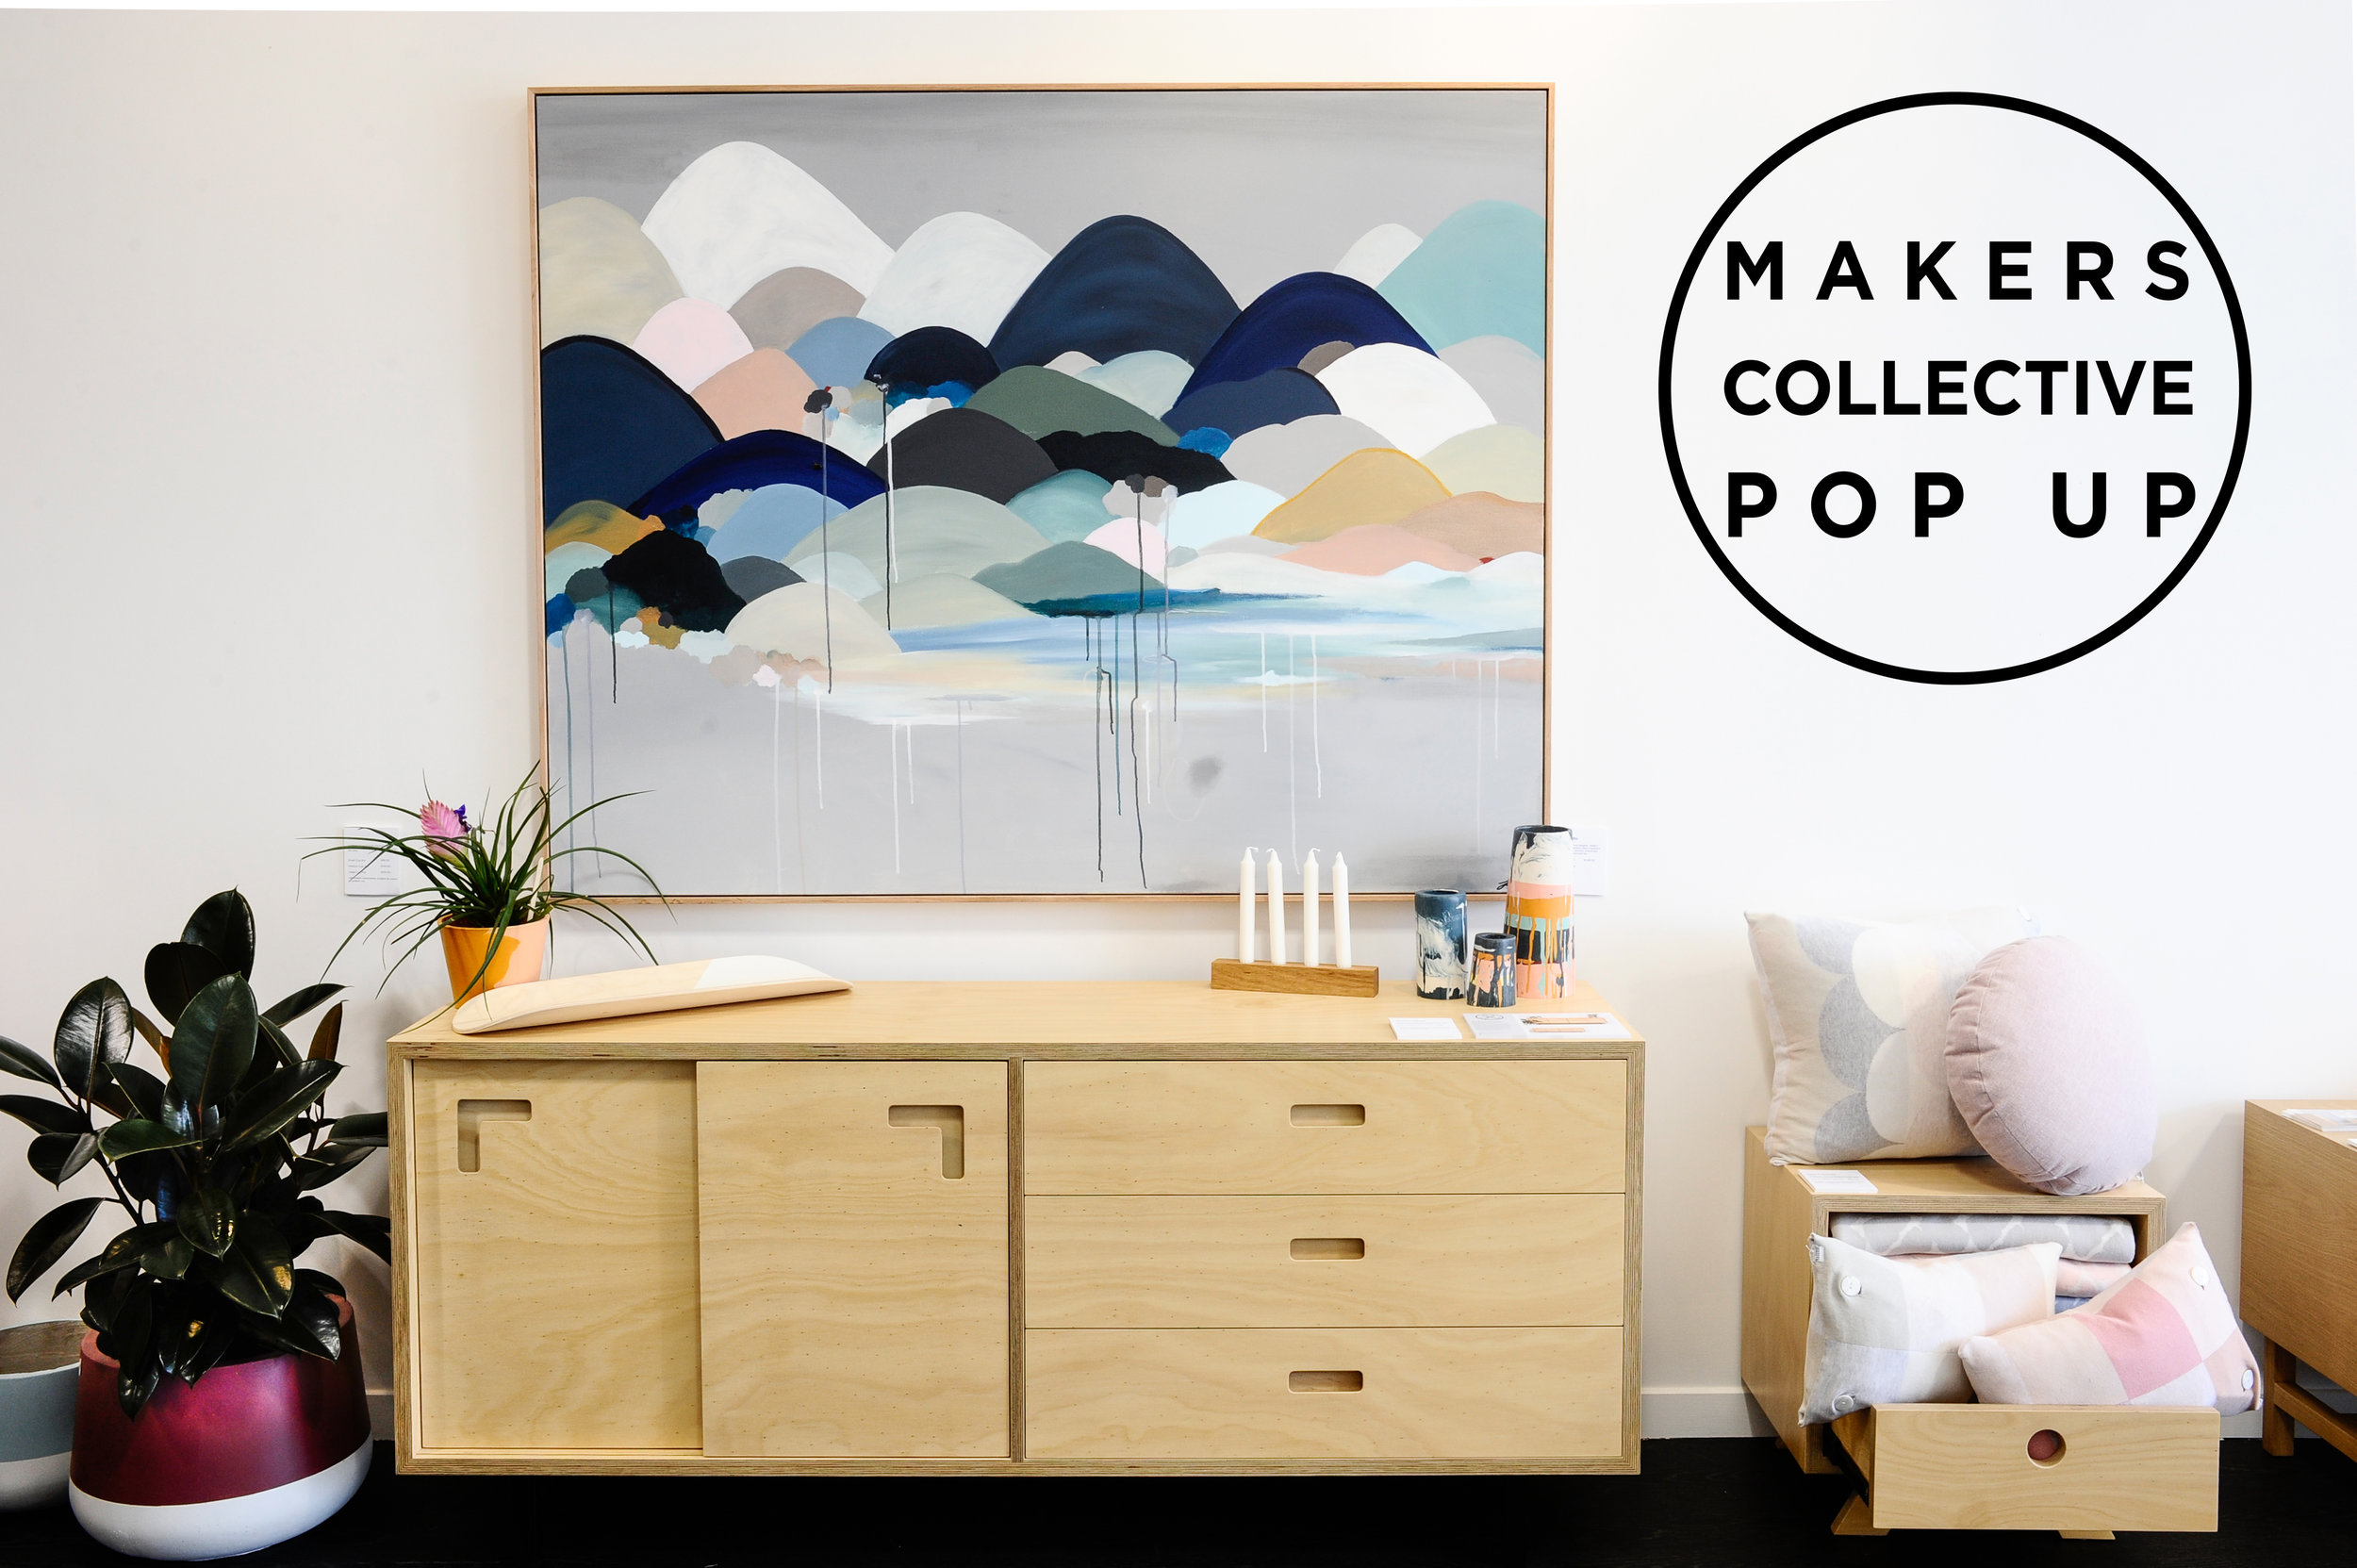 In the heart of Richmond, there's so much to love at the Makers Collective Pop-Up. Image credit : Haley Kigbo